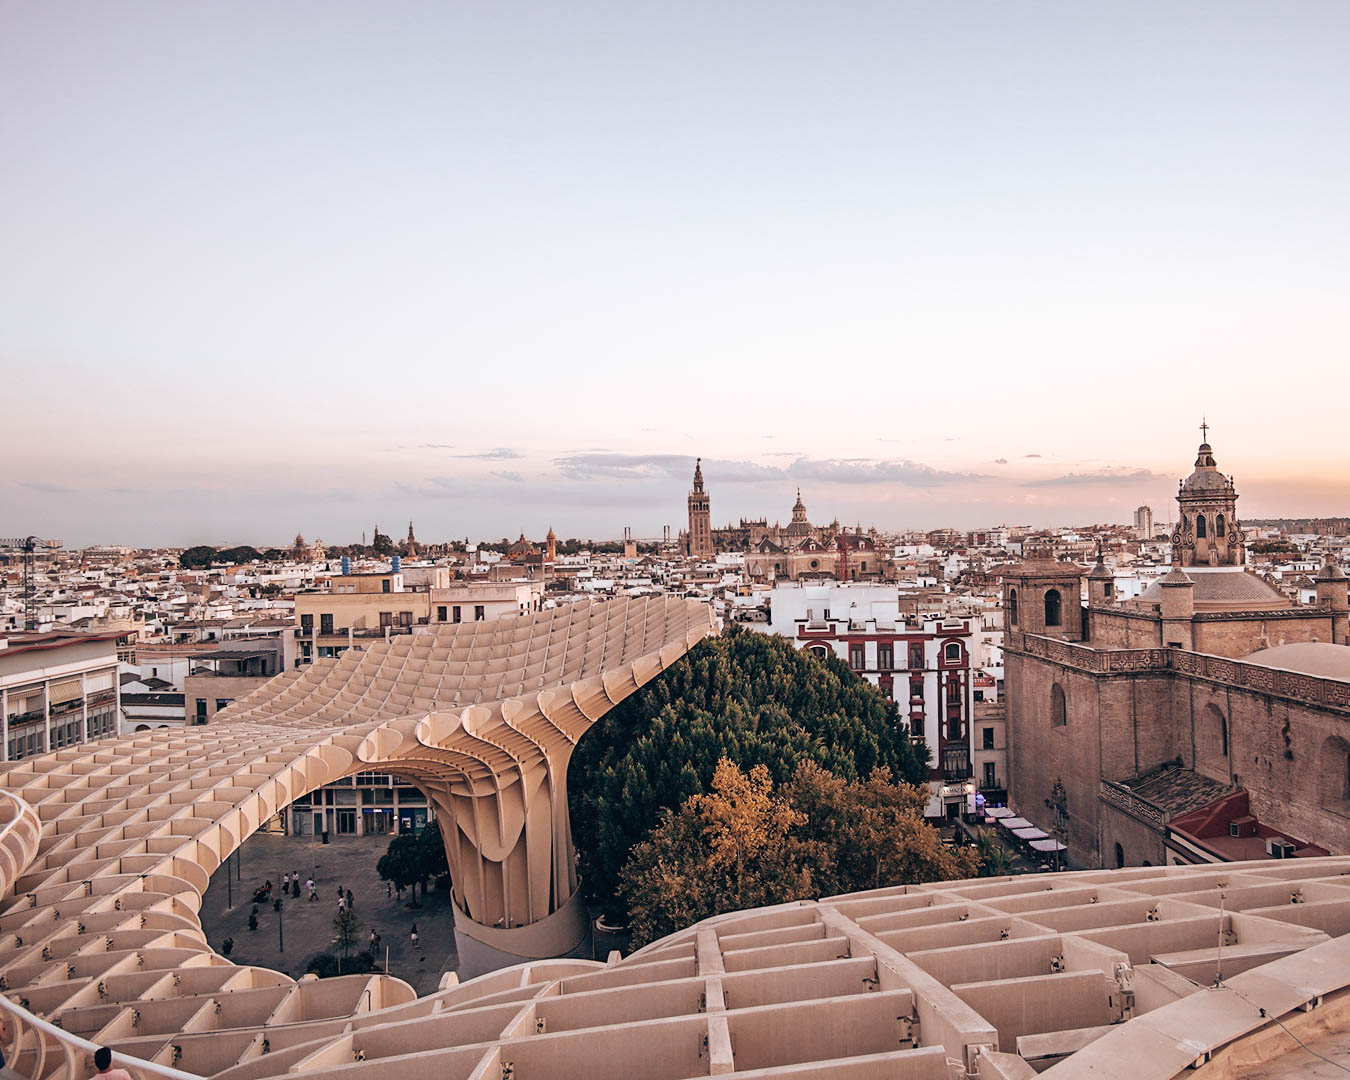 Sunset Views of Seville from the Metropol Parasol. Discover the best places to visit in Seville, Spain from this insider's guide to Seville. #seville #sevilleguide #sevilletravelguide #sevilleeurope #sevilletips #sevillefood #sevilletapas